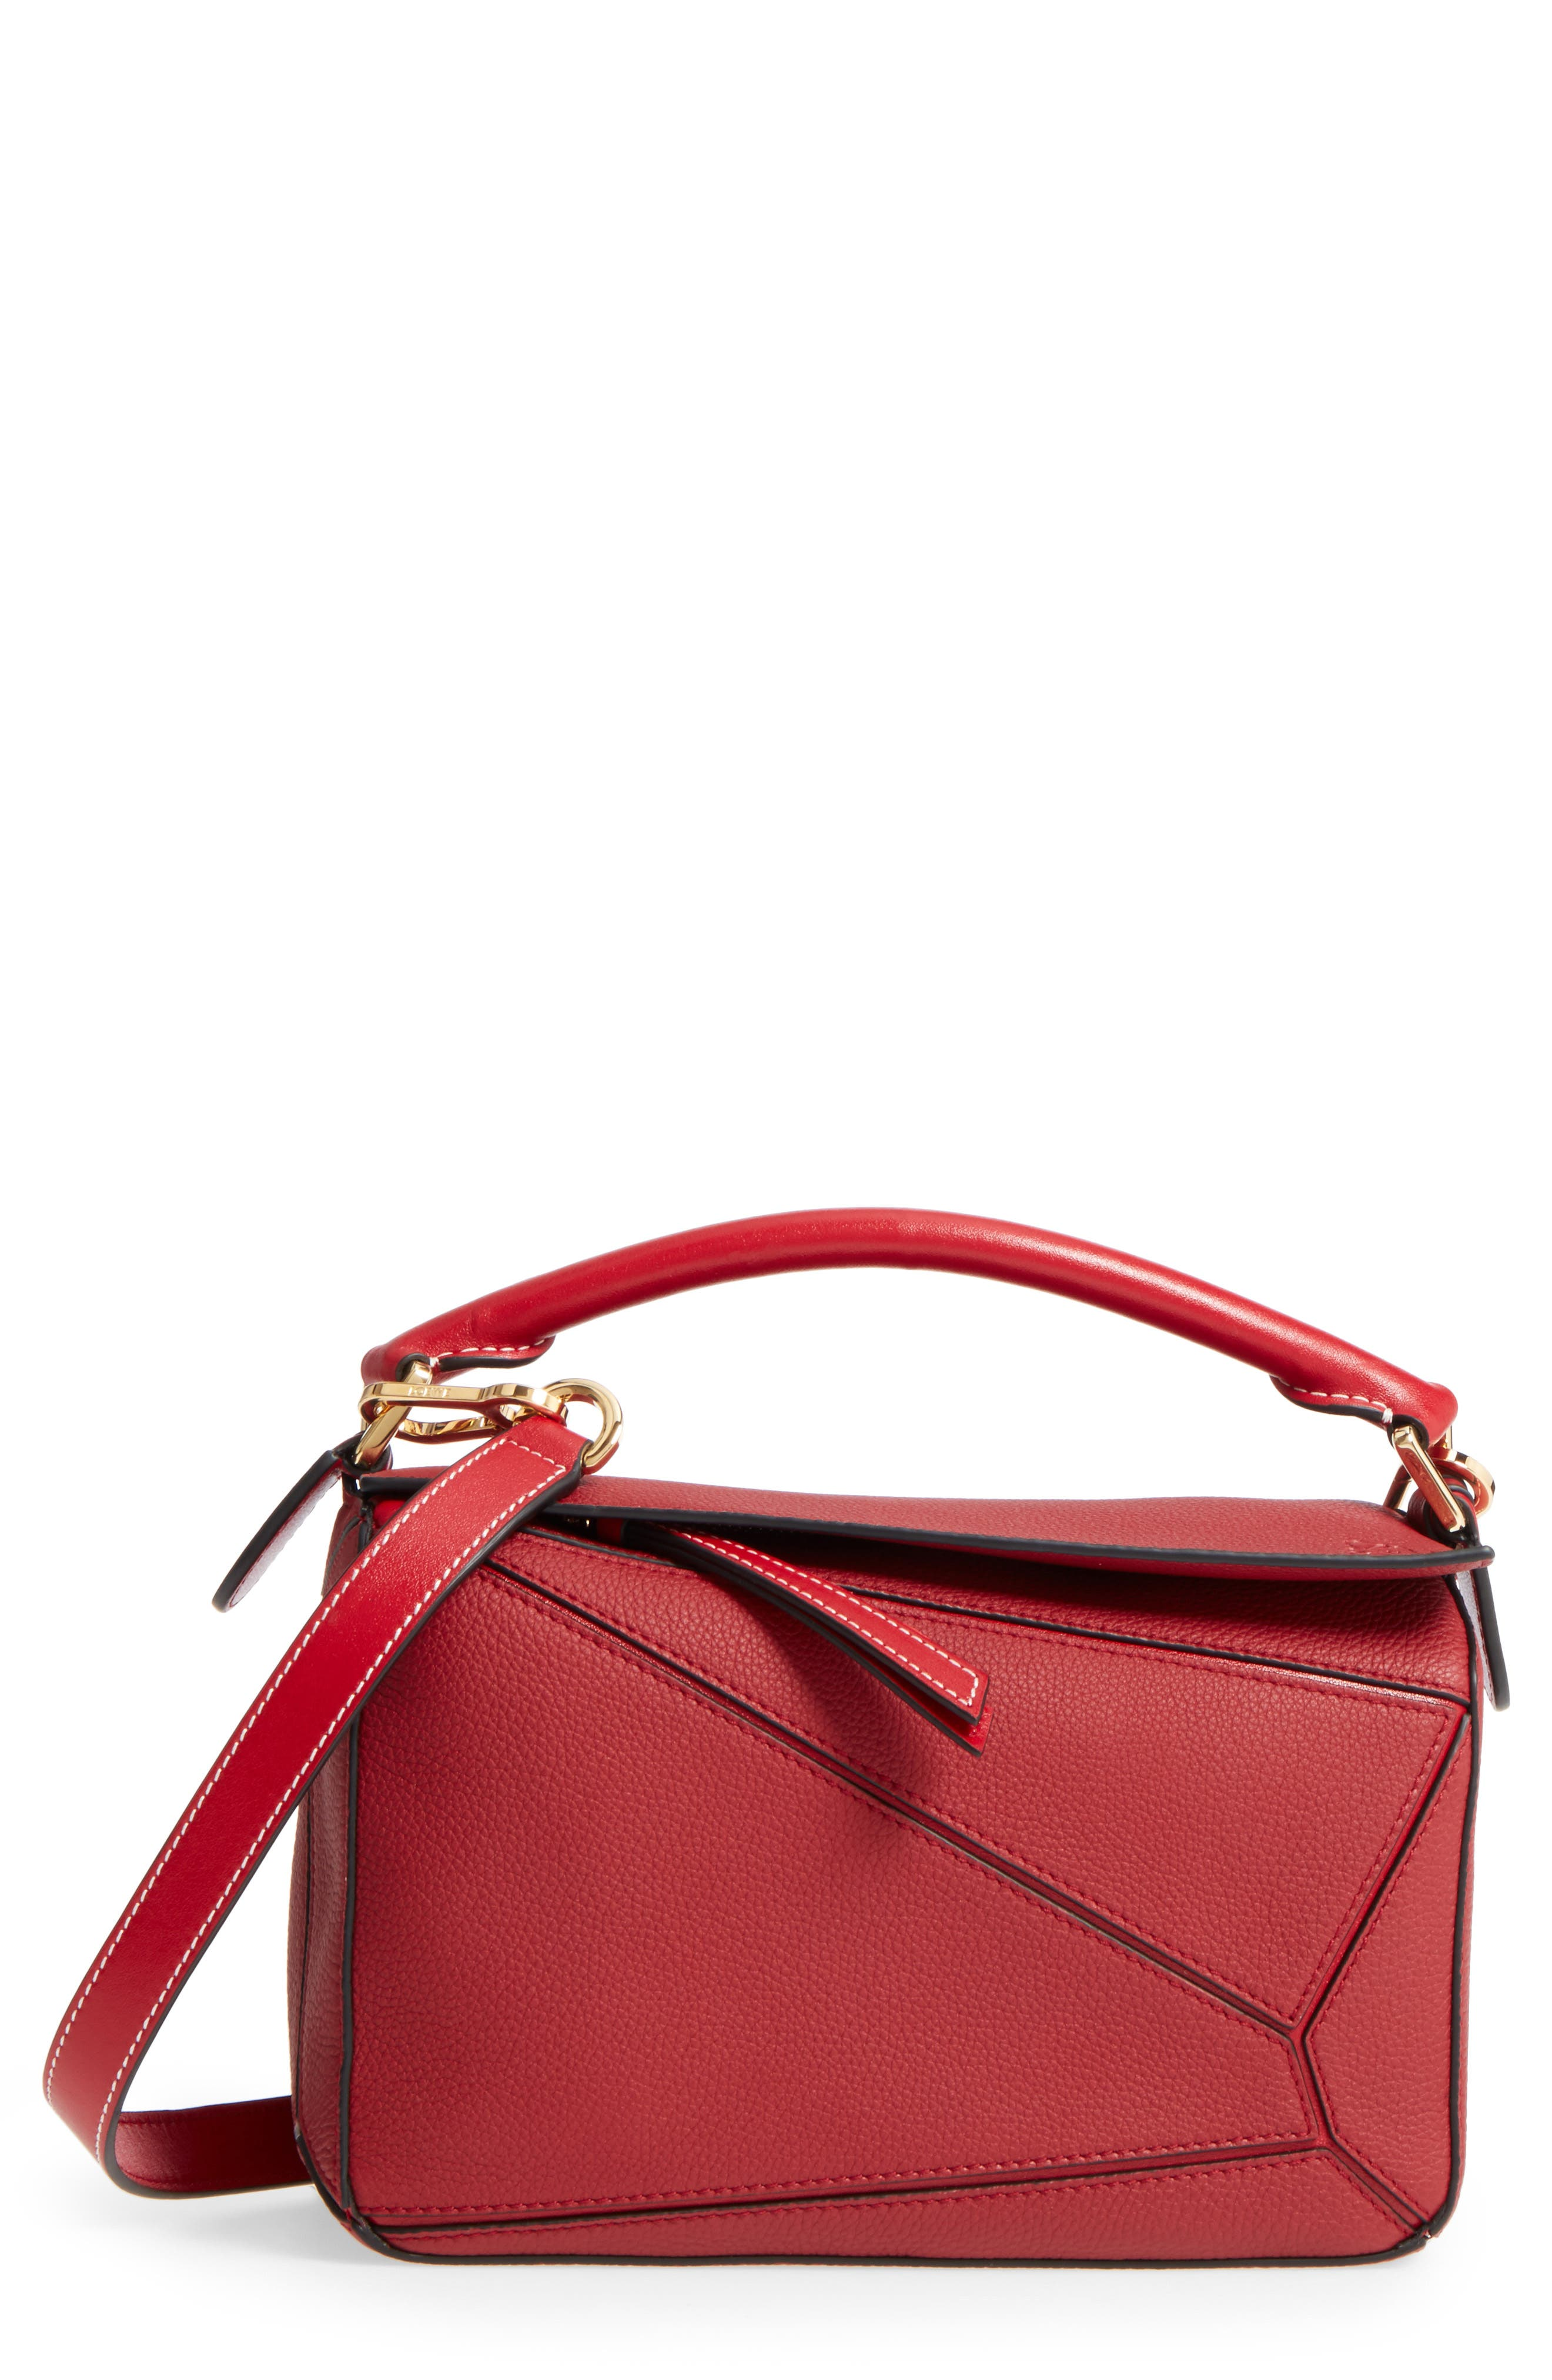 Main Image - Loewe Small Puzzle Leather Shoulder Bag